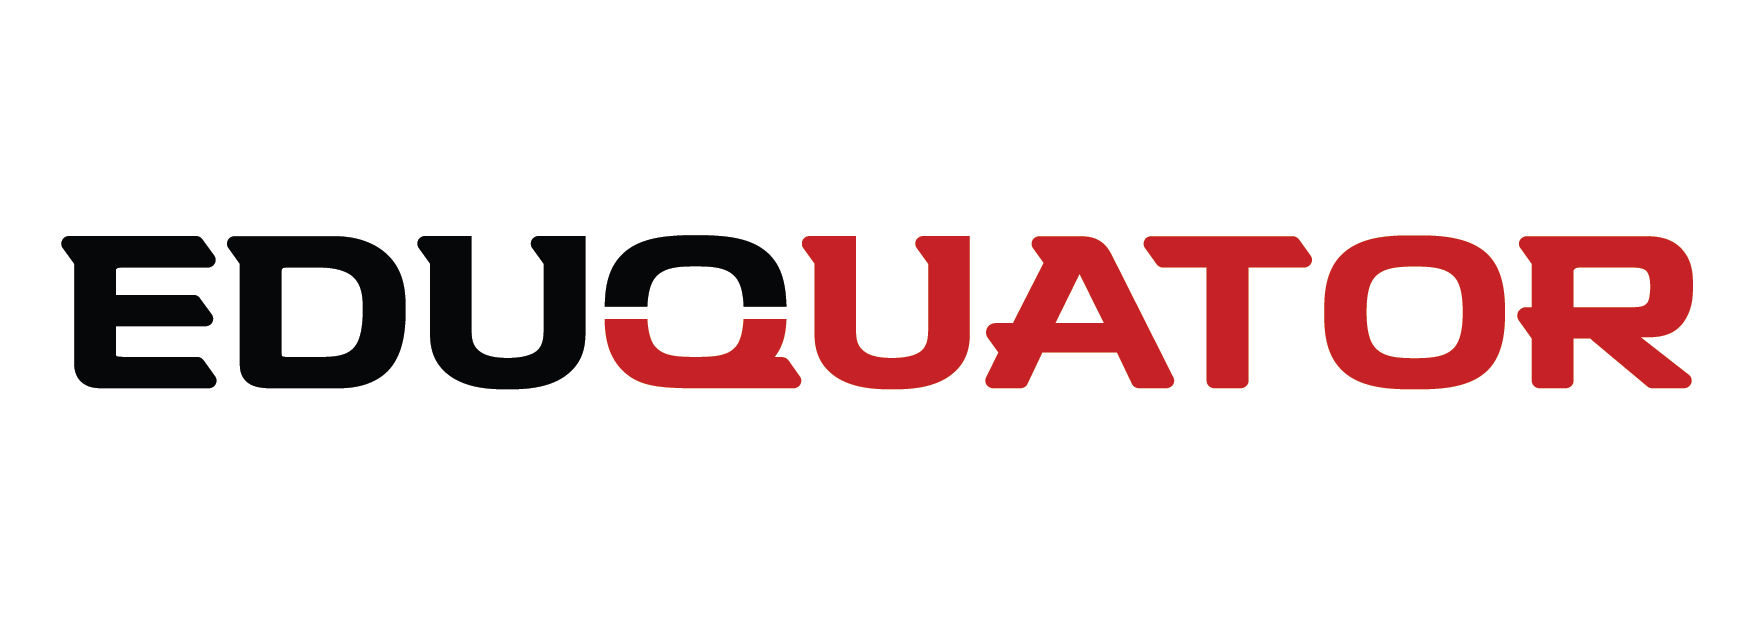 eduquator - Improving relevance of education and training in Africa